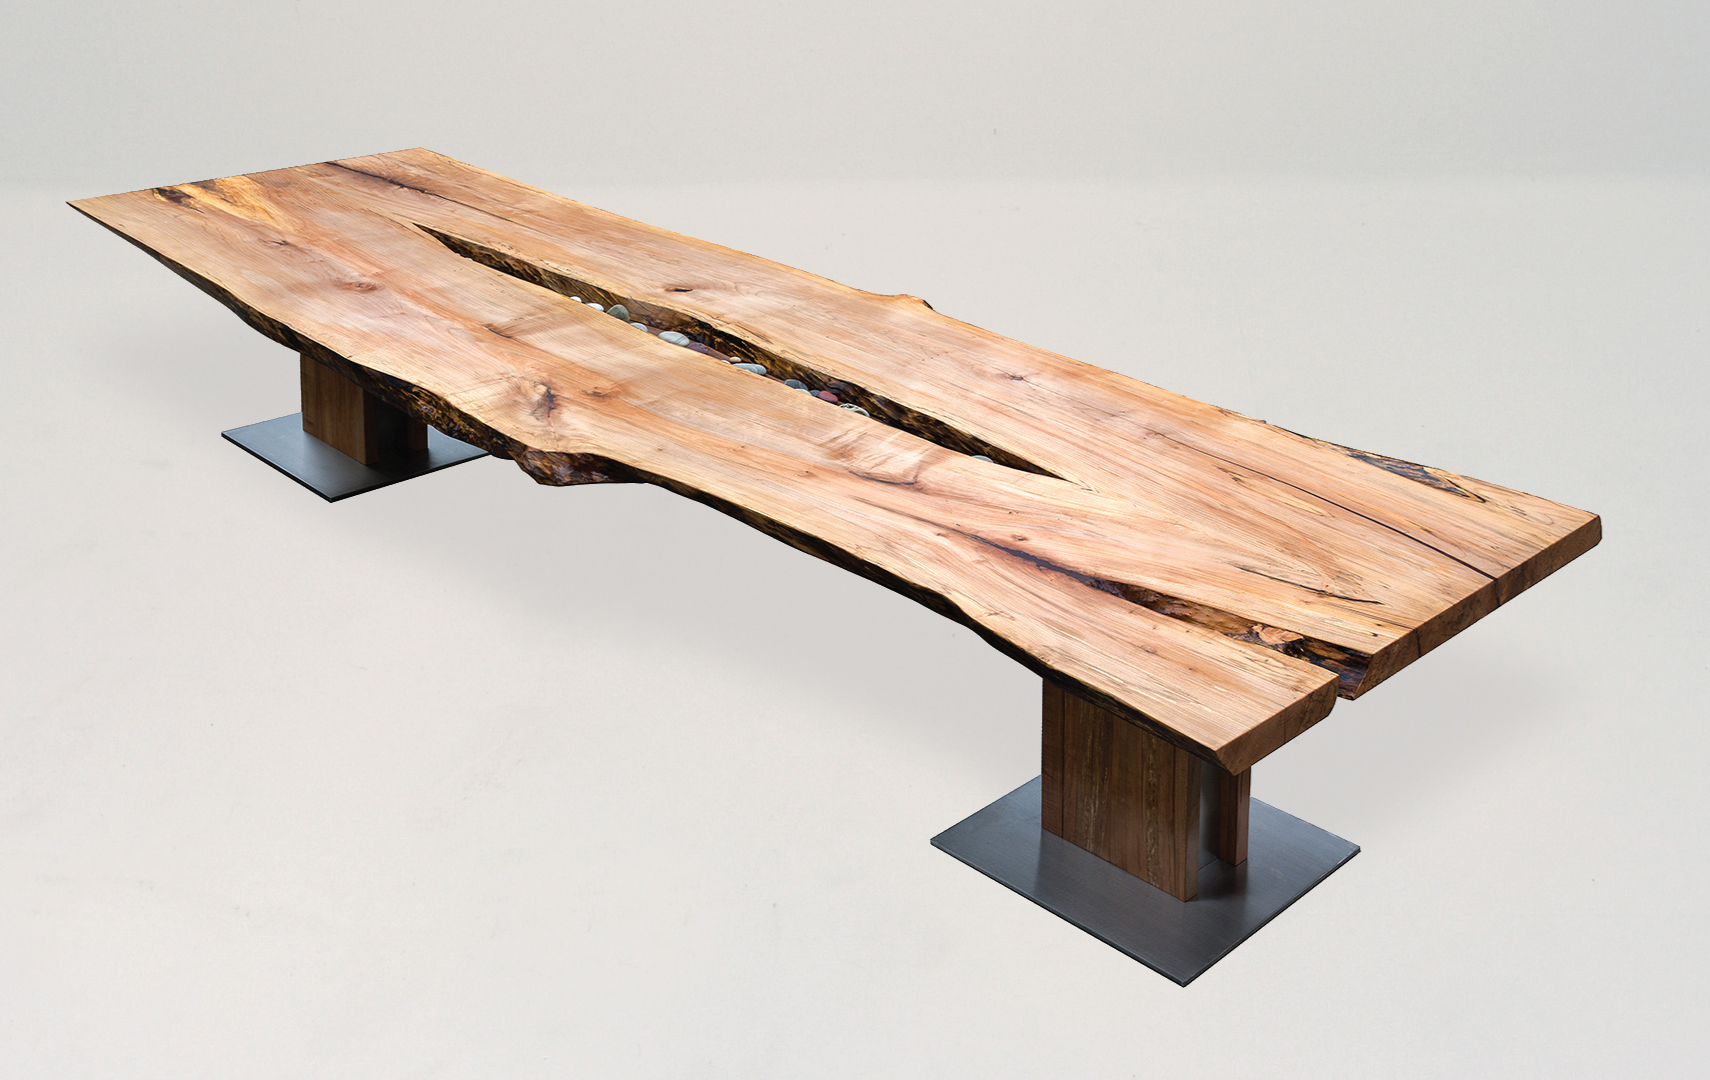 mapleart custom wood furniture vancouver bclaurel